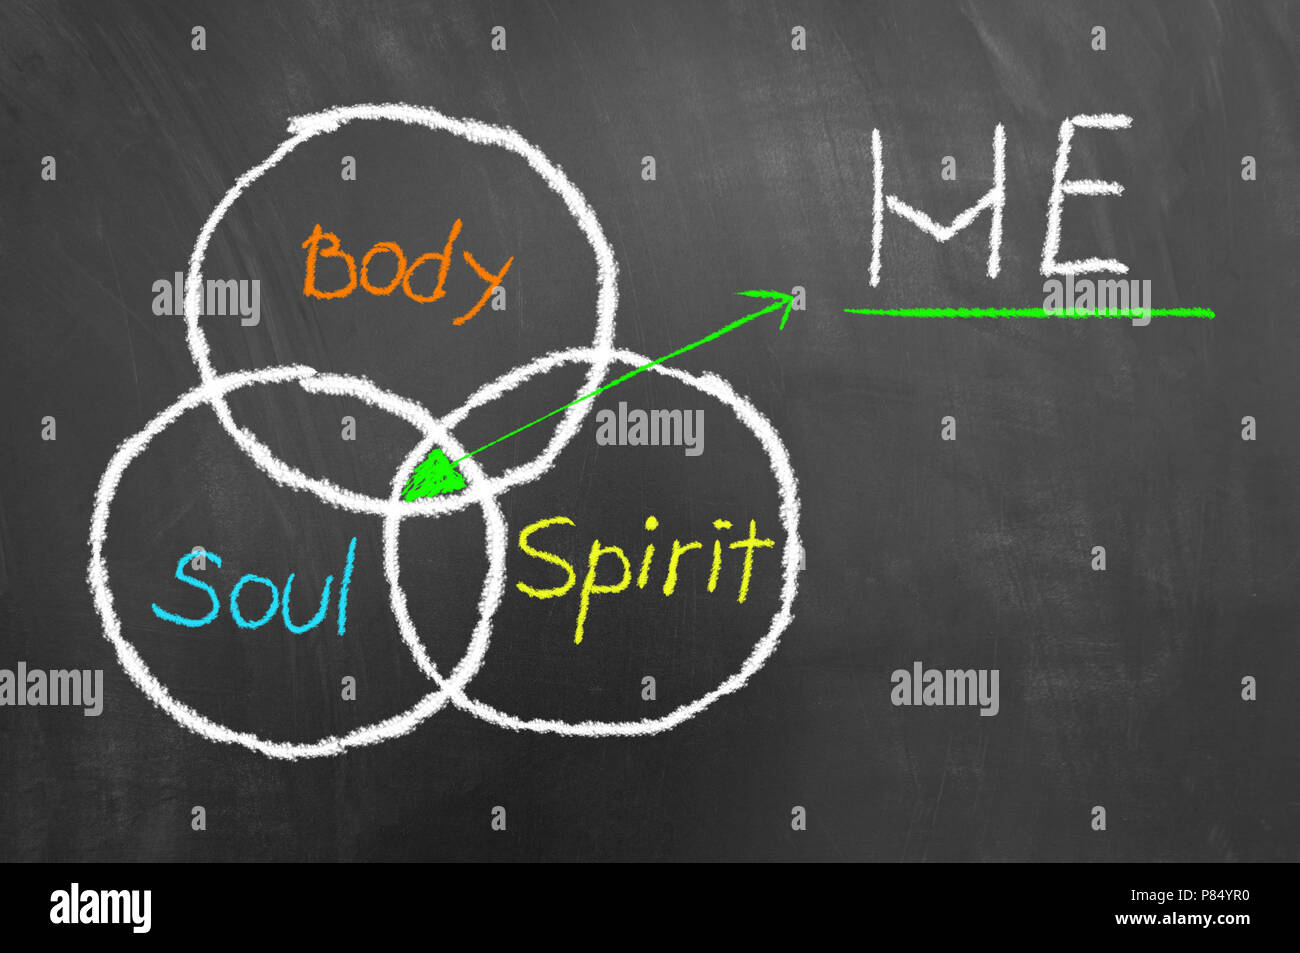 Equilibrium between body soul and spirit colorful chalk drawing illustration on blackboard or chalkboard as lifestyle healthy balance concept - Stock Image